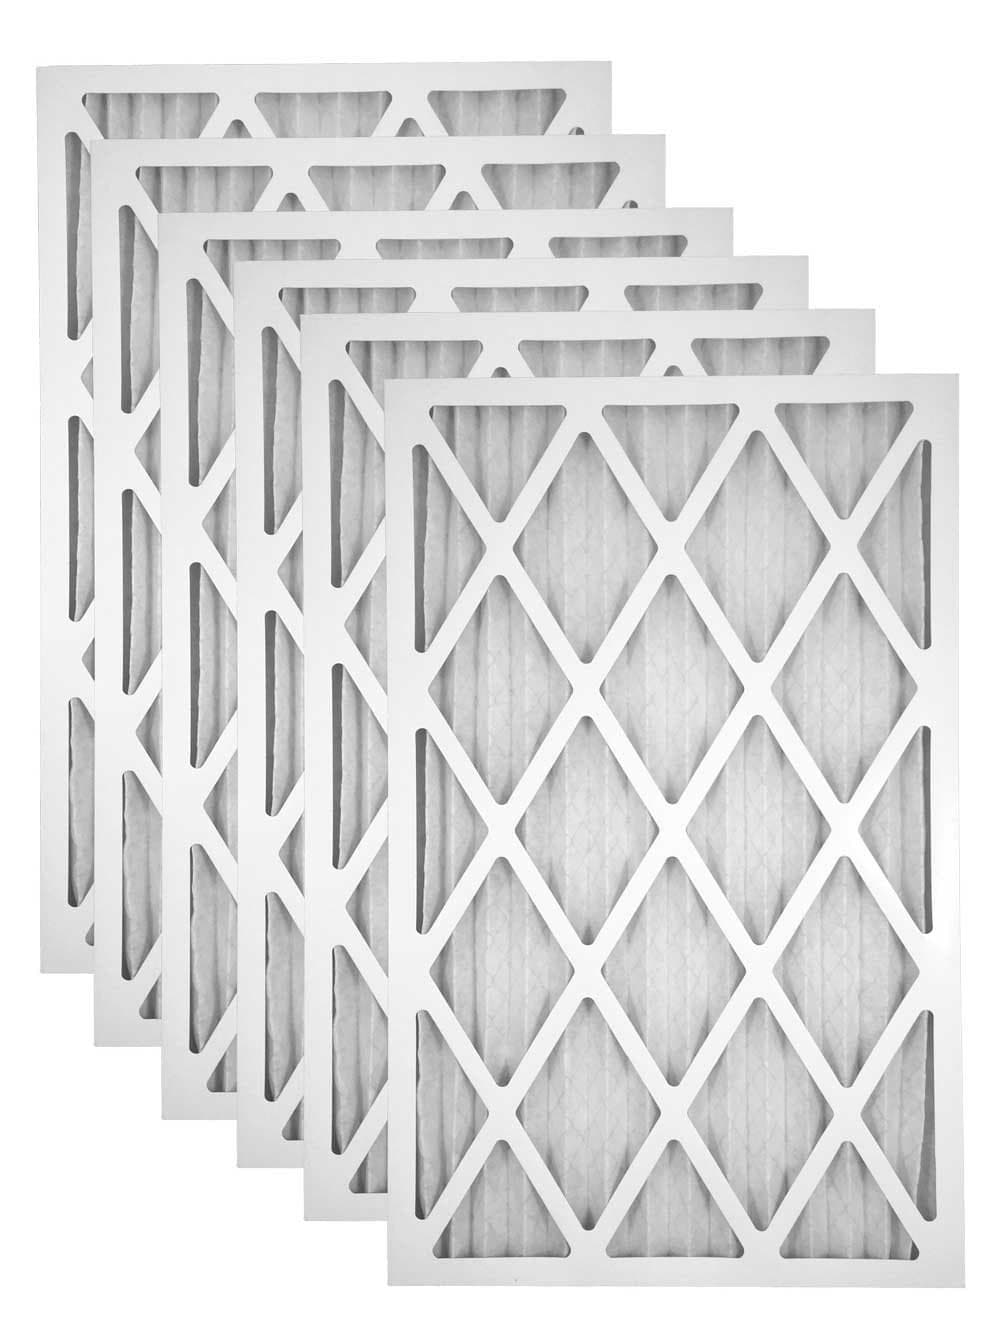 16x25x1 Merv 13 Pleated AC Furnace Filter - Case of 6